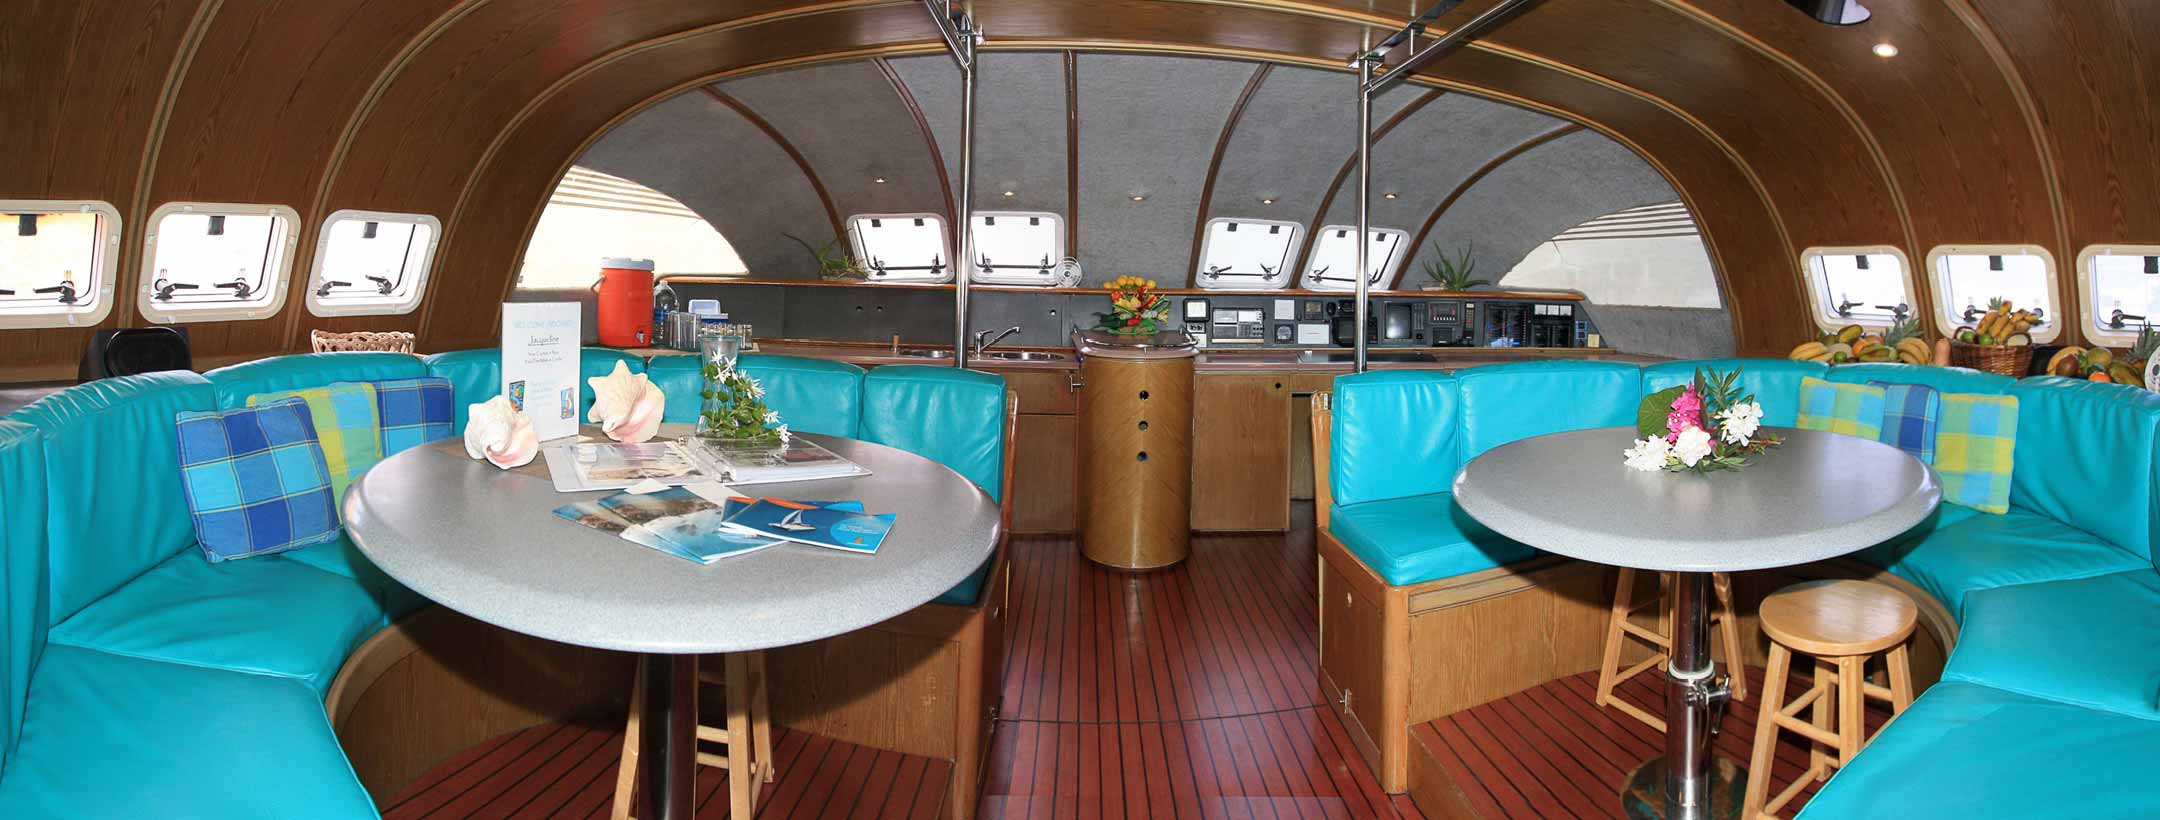 TradeWinds Marquises 56 Cruising Class Yacht indoor view